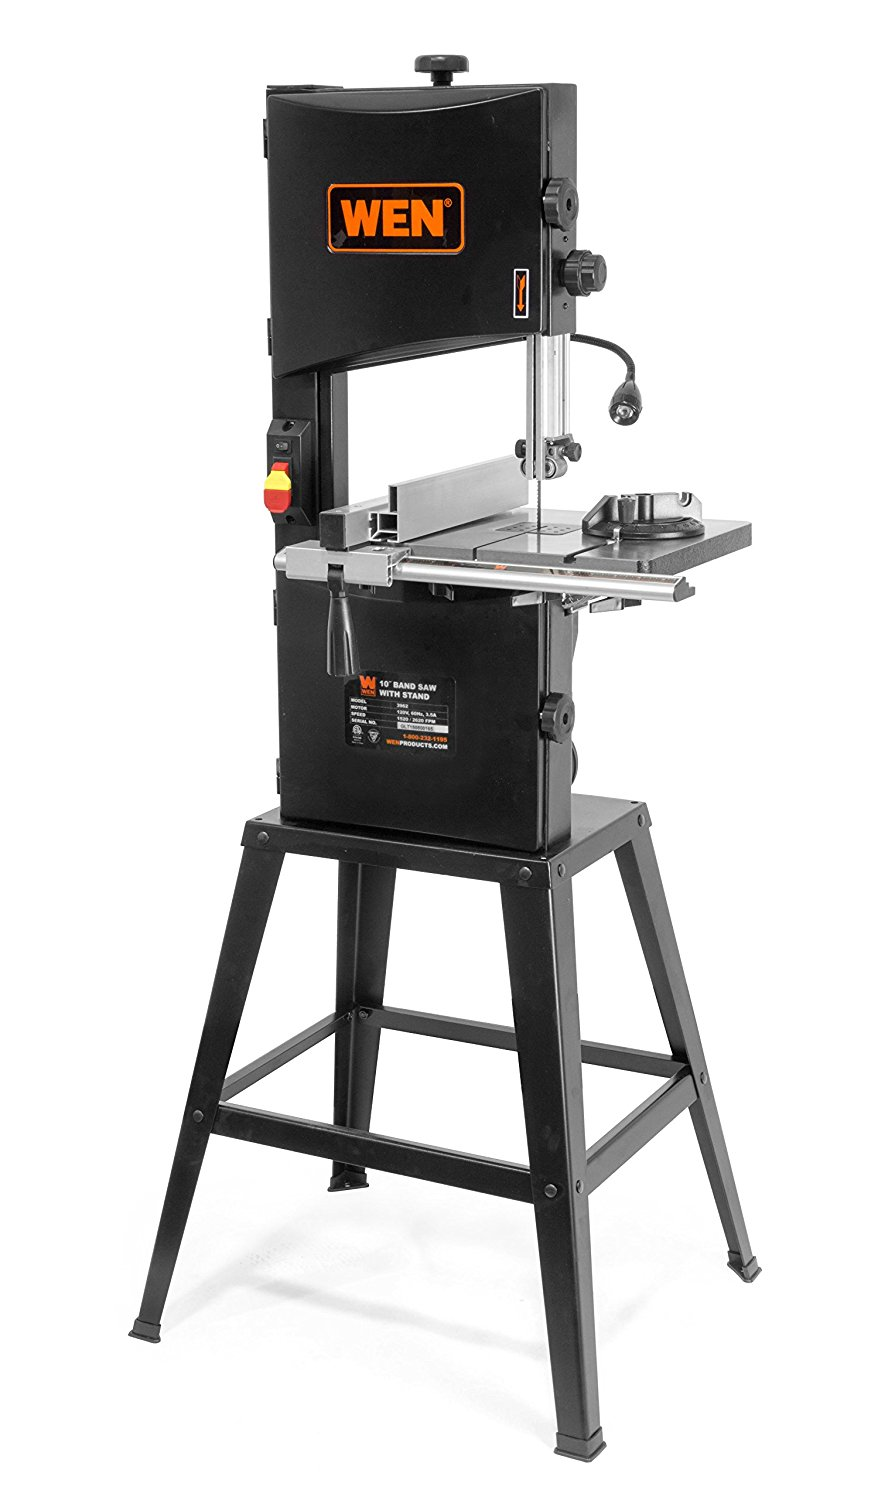 "WEN 3962 Two-Speed Band Saw with Stand and Worklight, 10"" by"